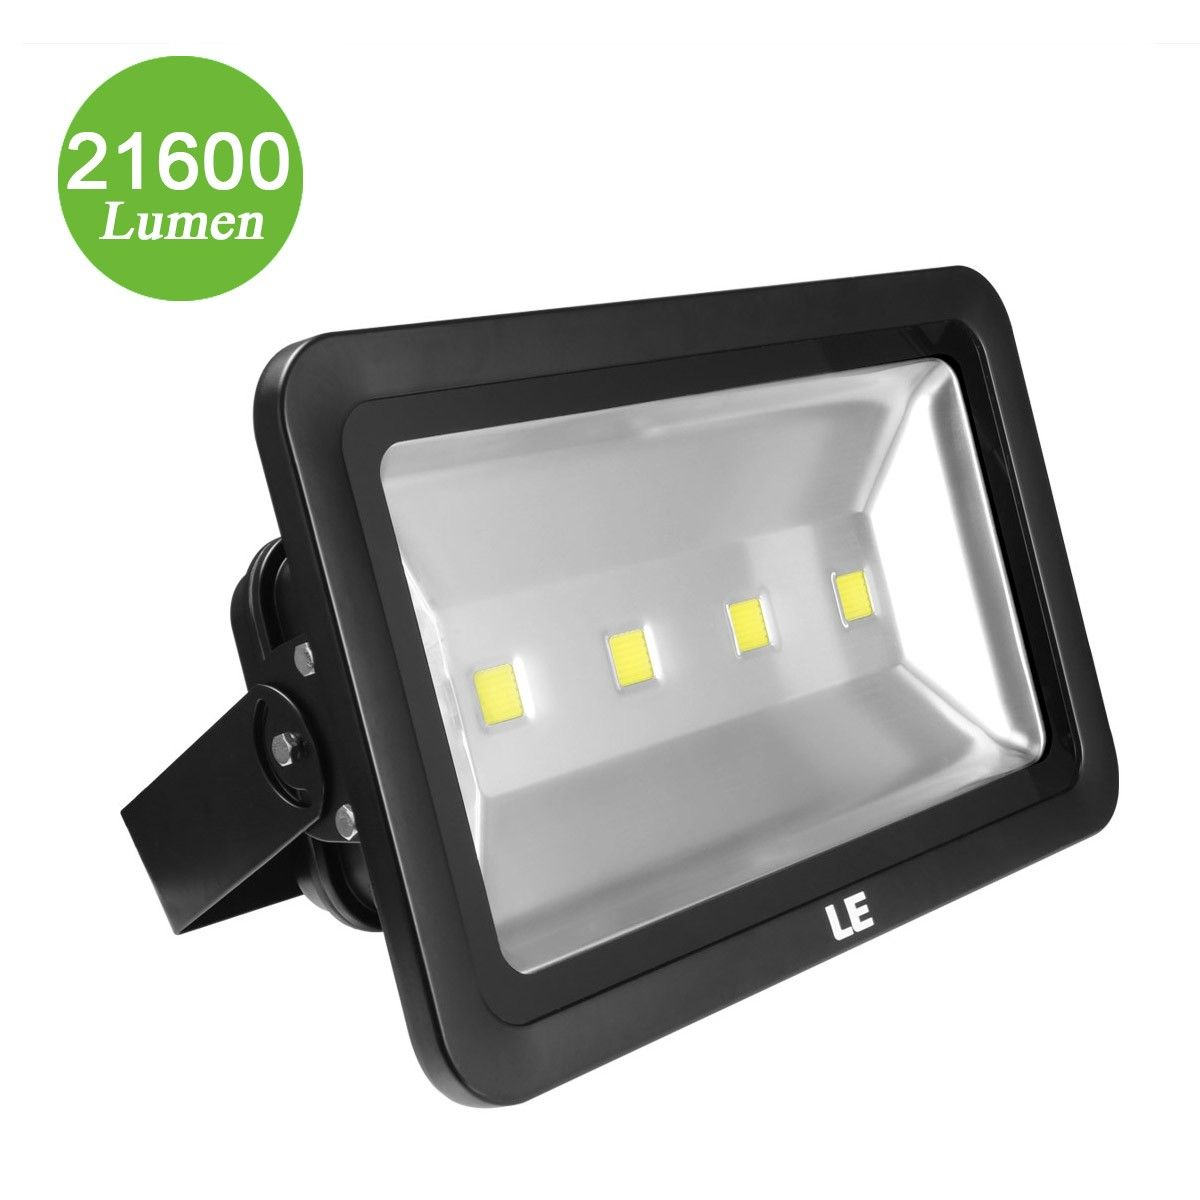 Led Outdoor Flood Light Bulbs Brilliant High Power 200W Outdoor Security Led Flood Lights 600W Hps Design Decoration